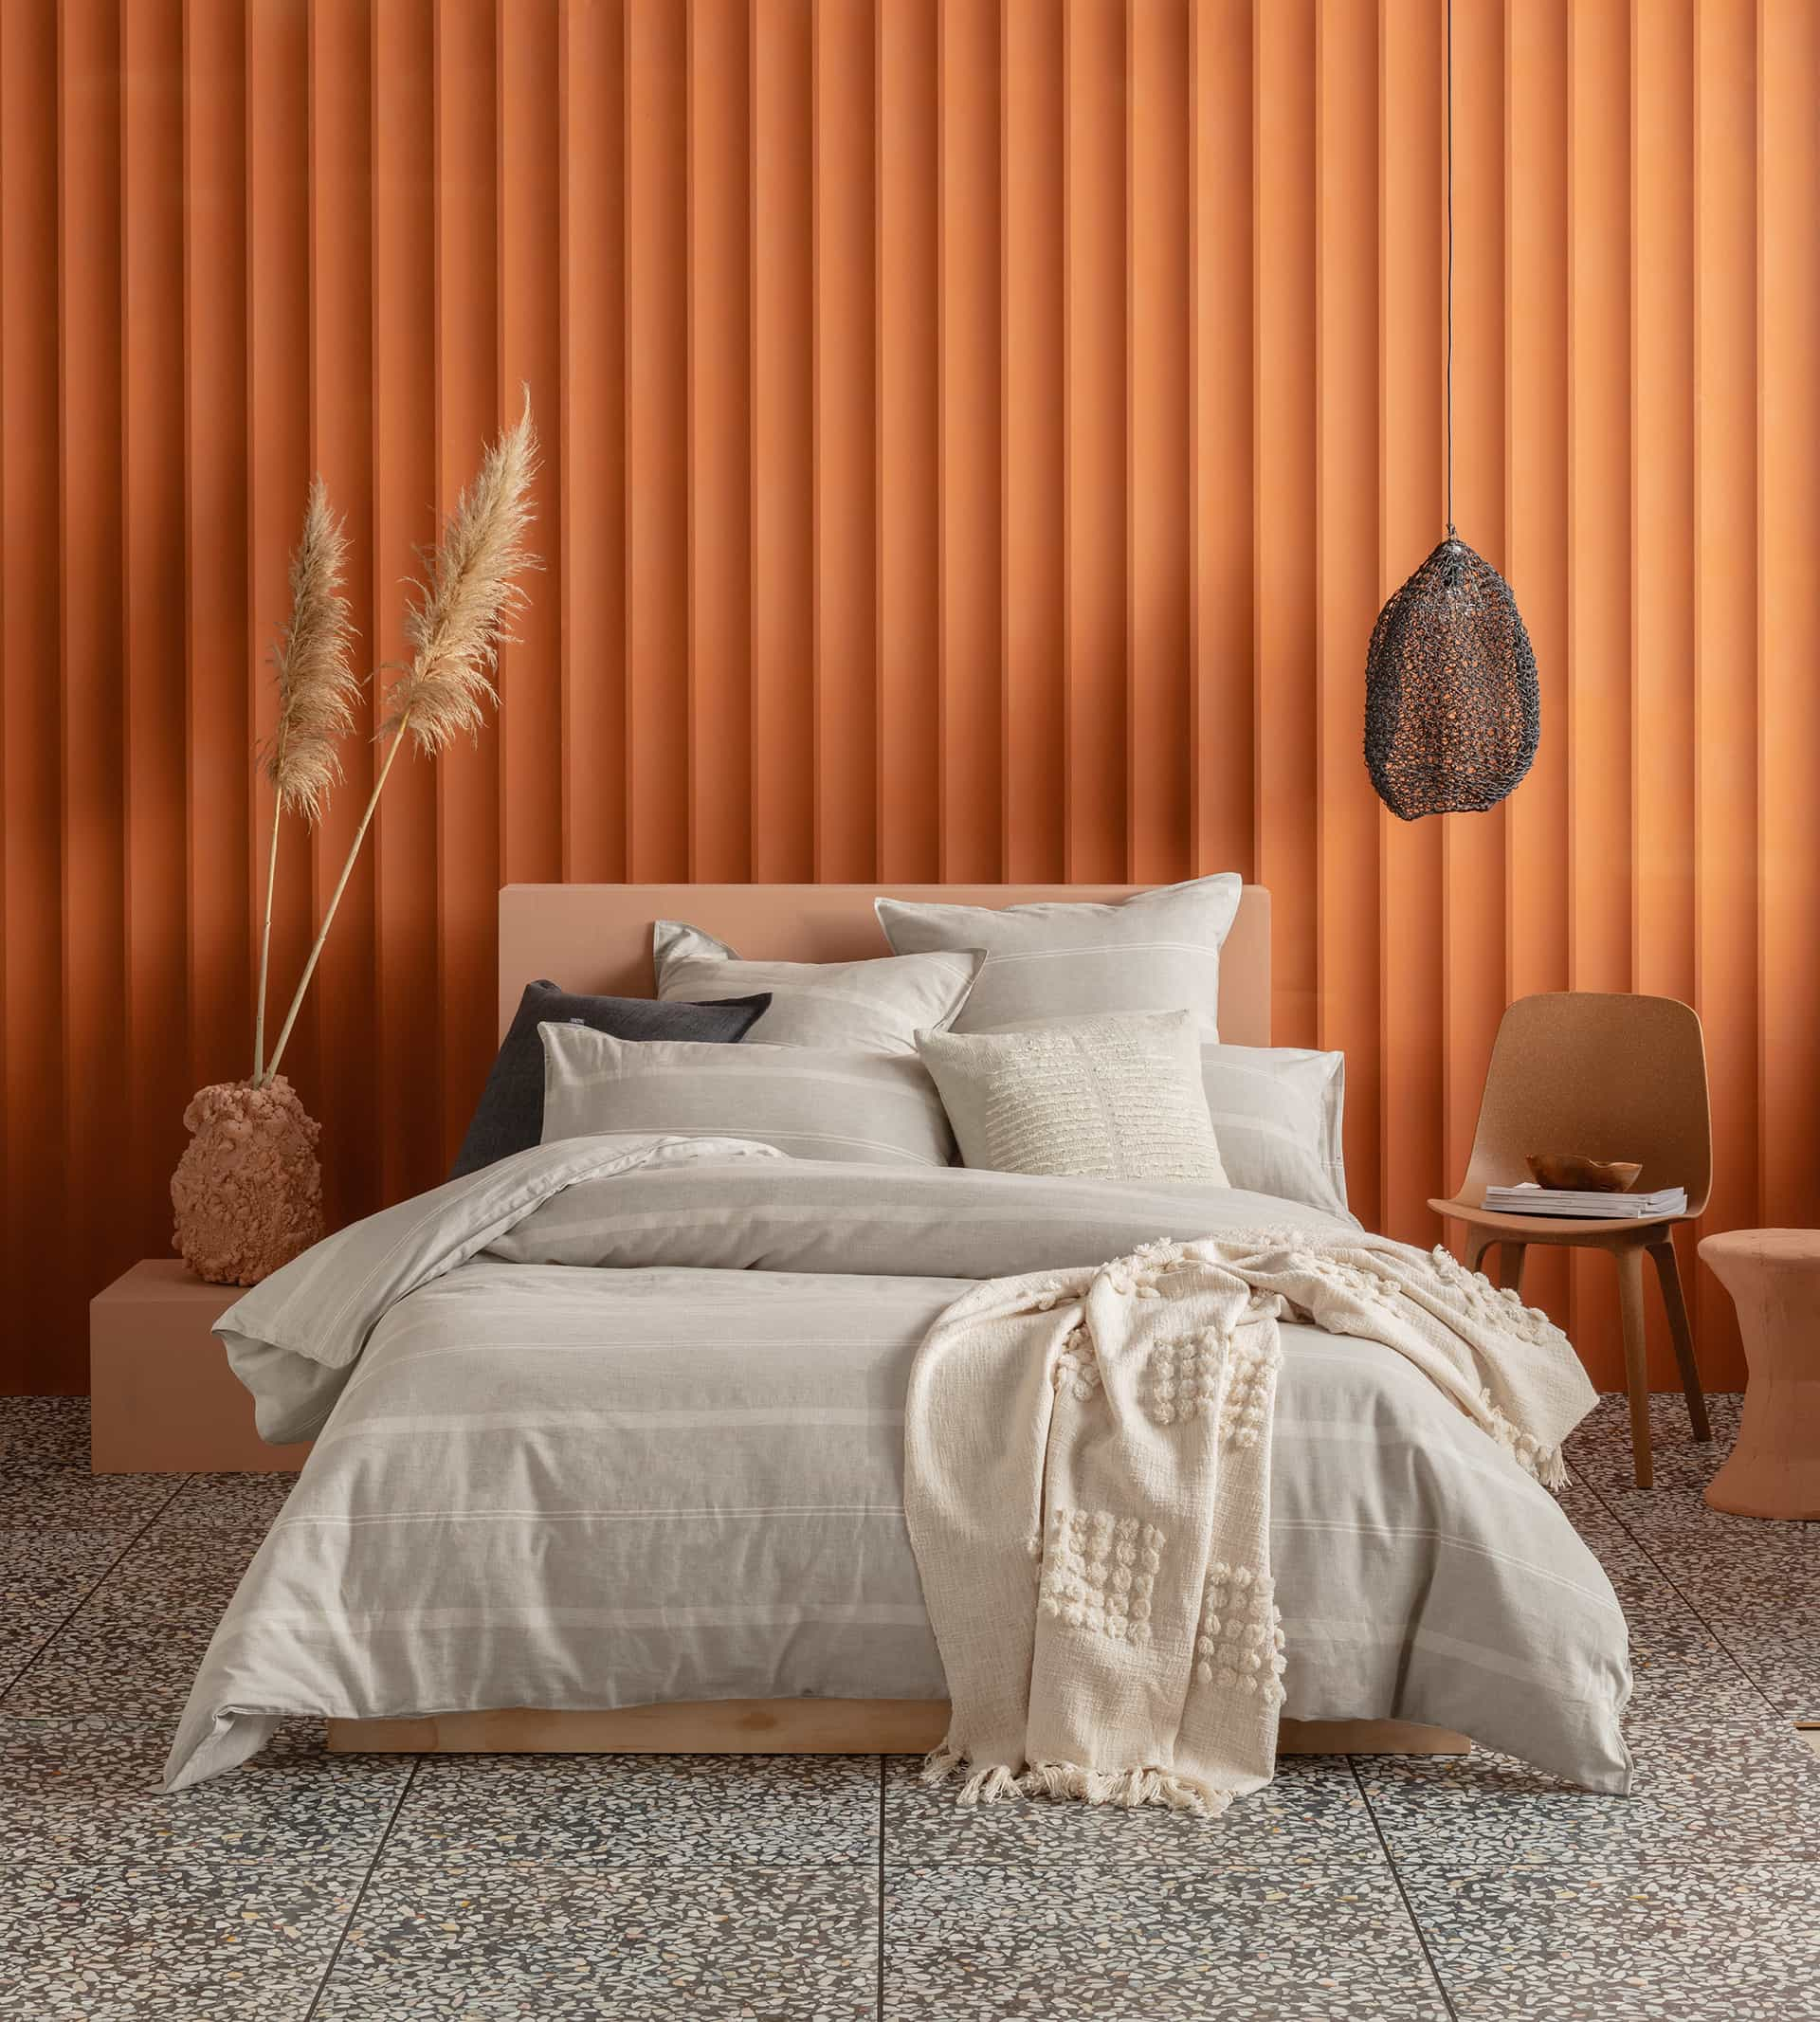 kas balmoral colourful quilt cover sets neutral bedding against orange feature wall